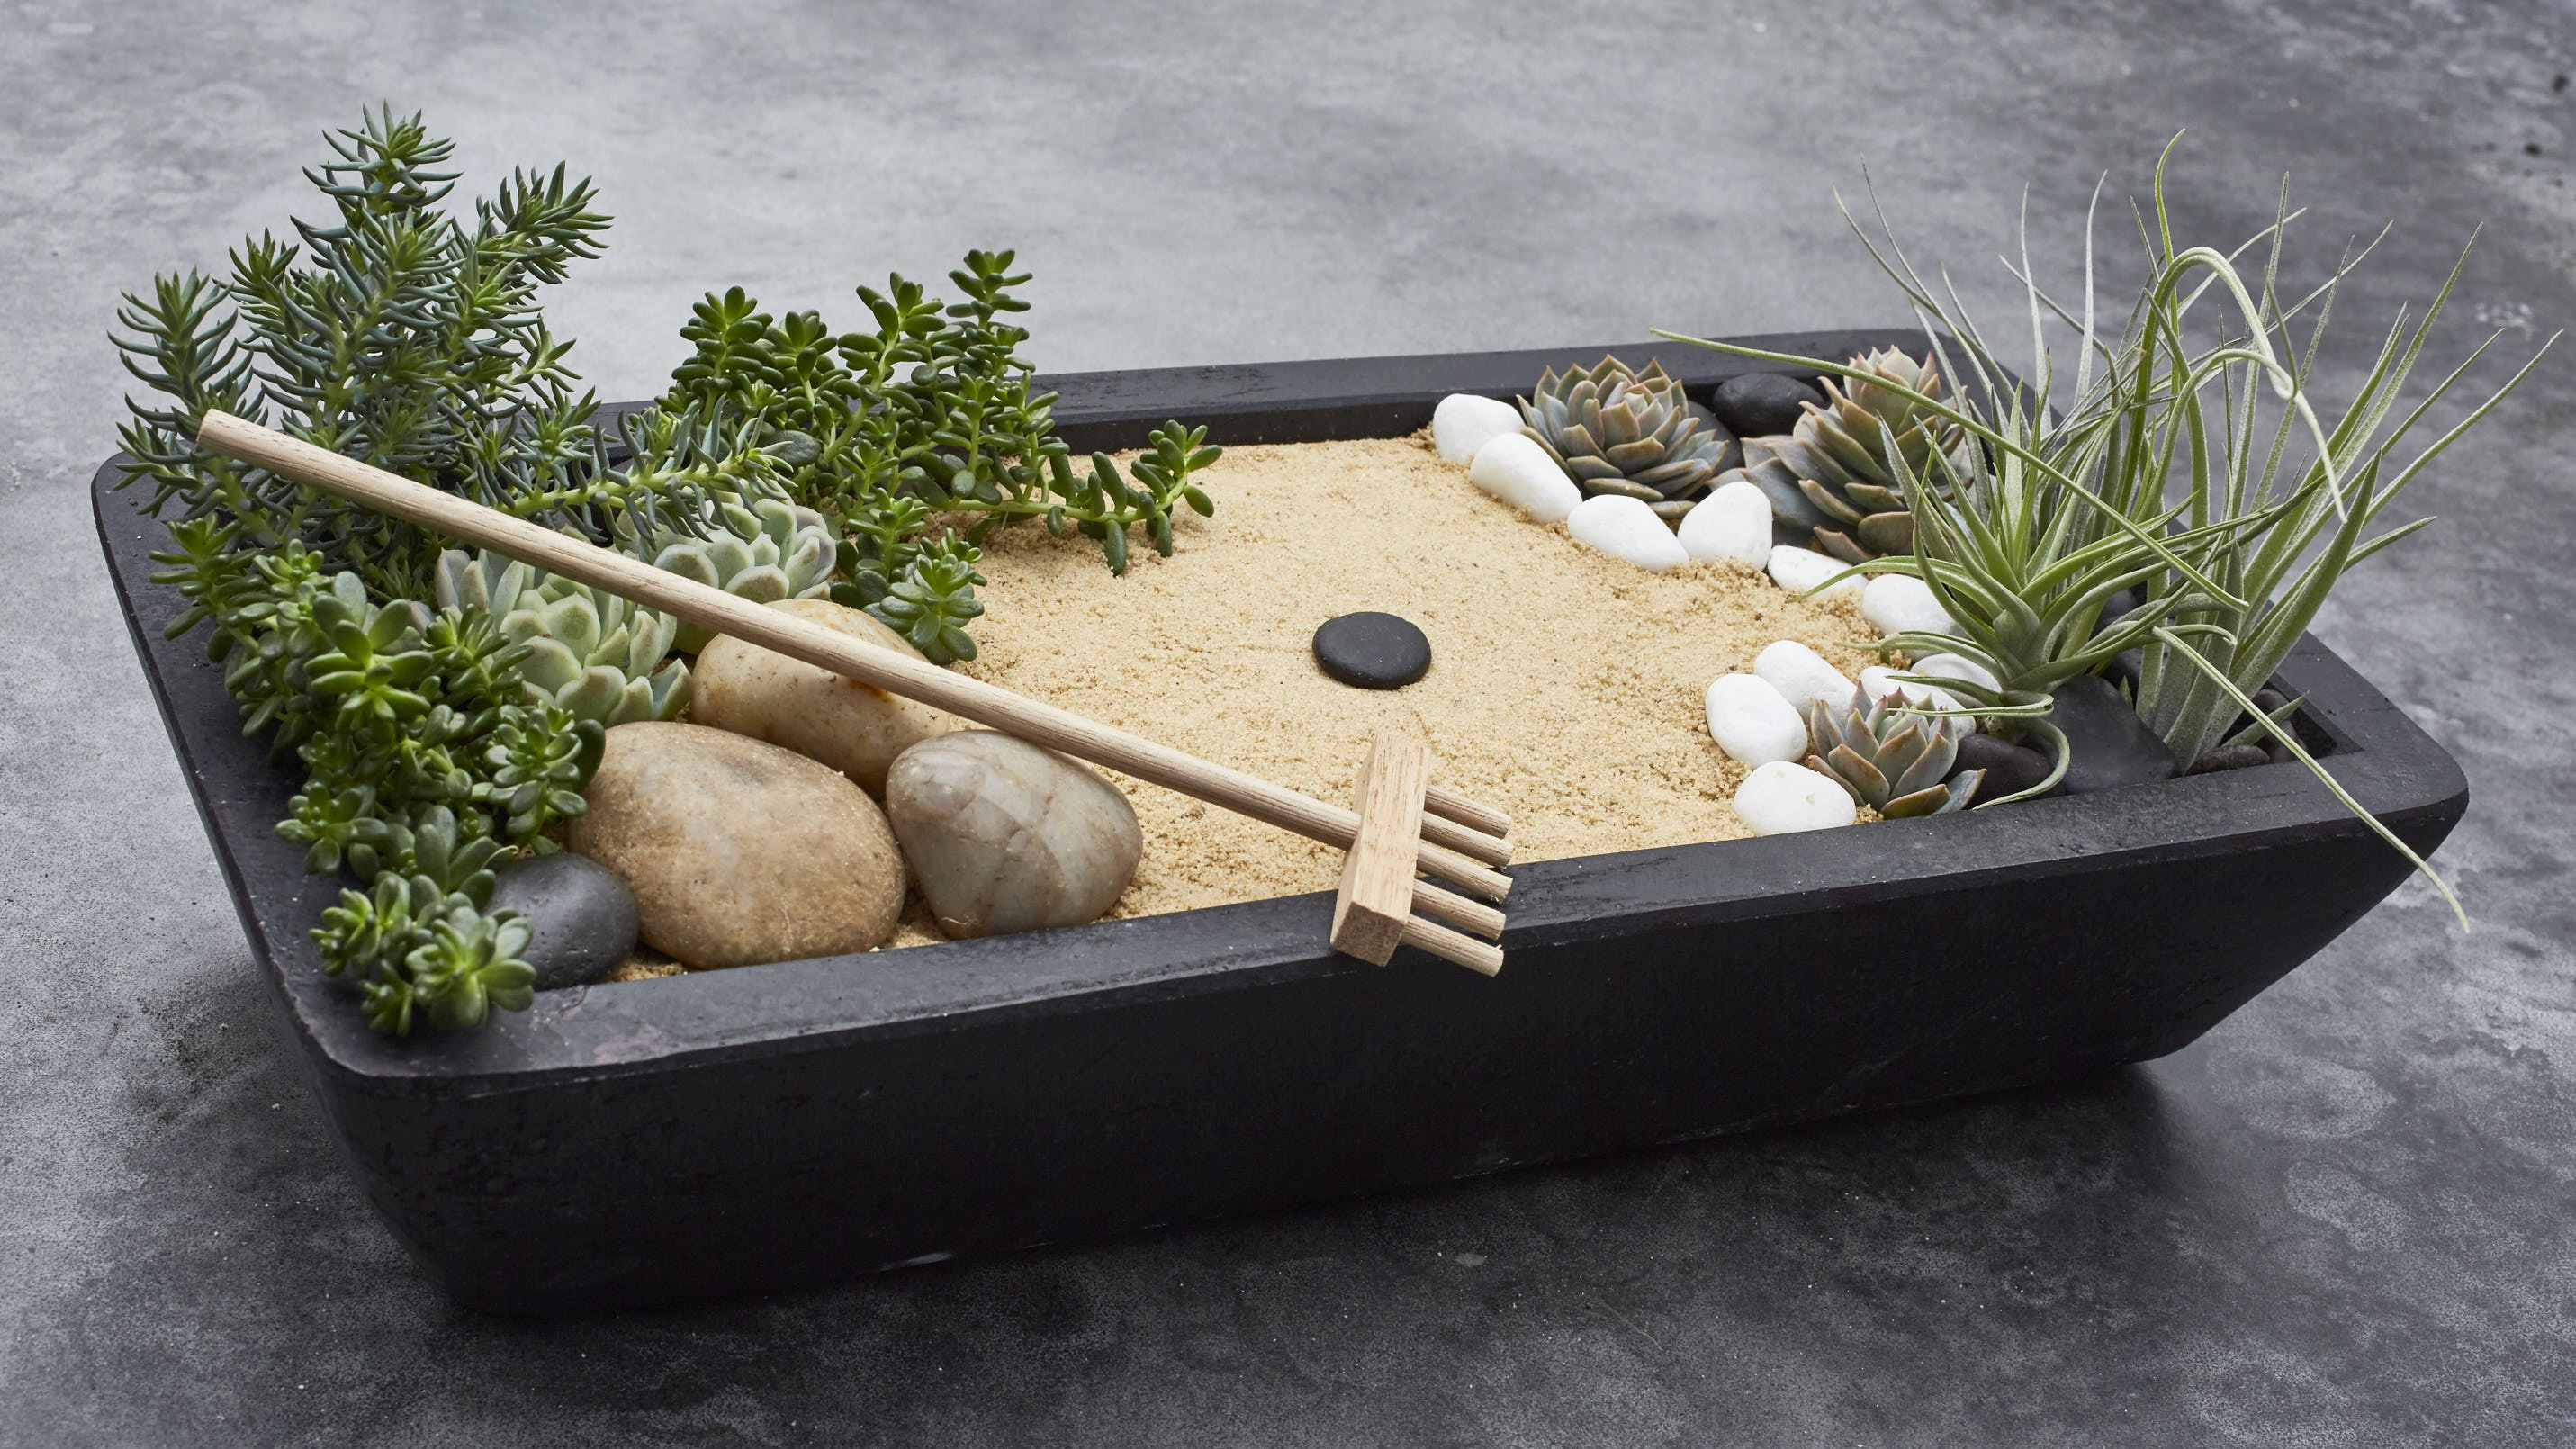 21 Beautiful Zen Garden Ideas 2019 Zengarden Miniature Backyard Diy Landscape Zen Garden Diy Mini Zen Garden Miniature Zen Garden